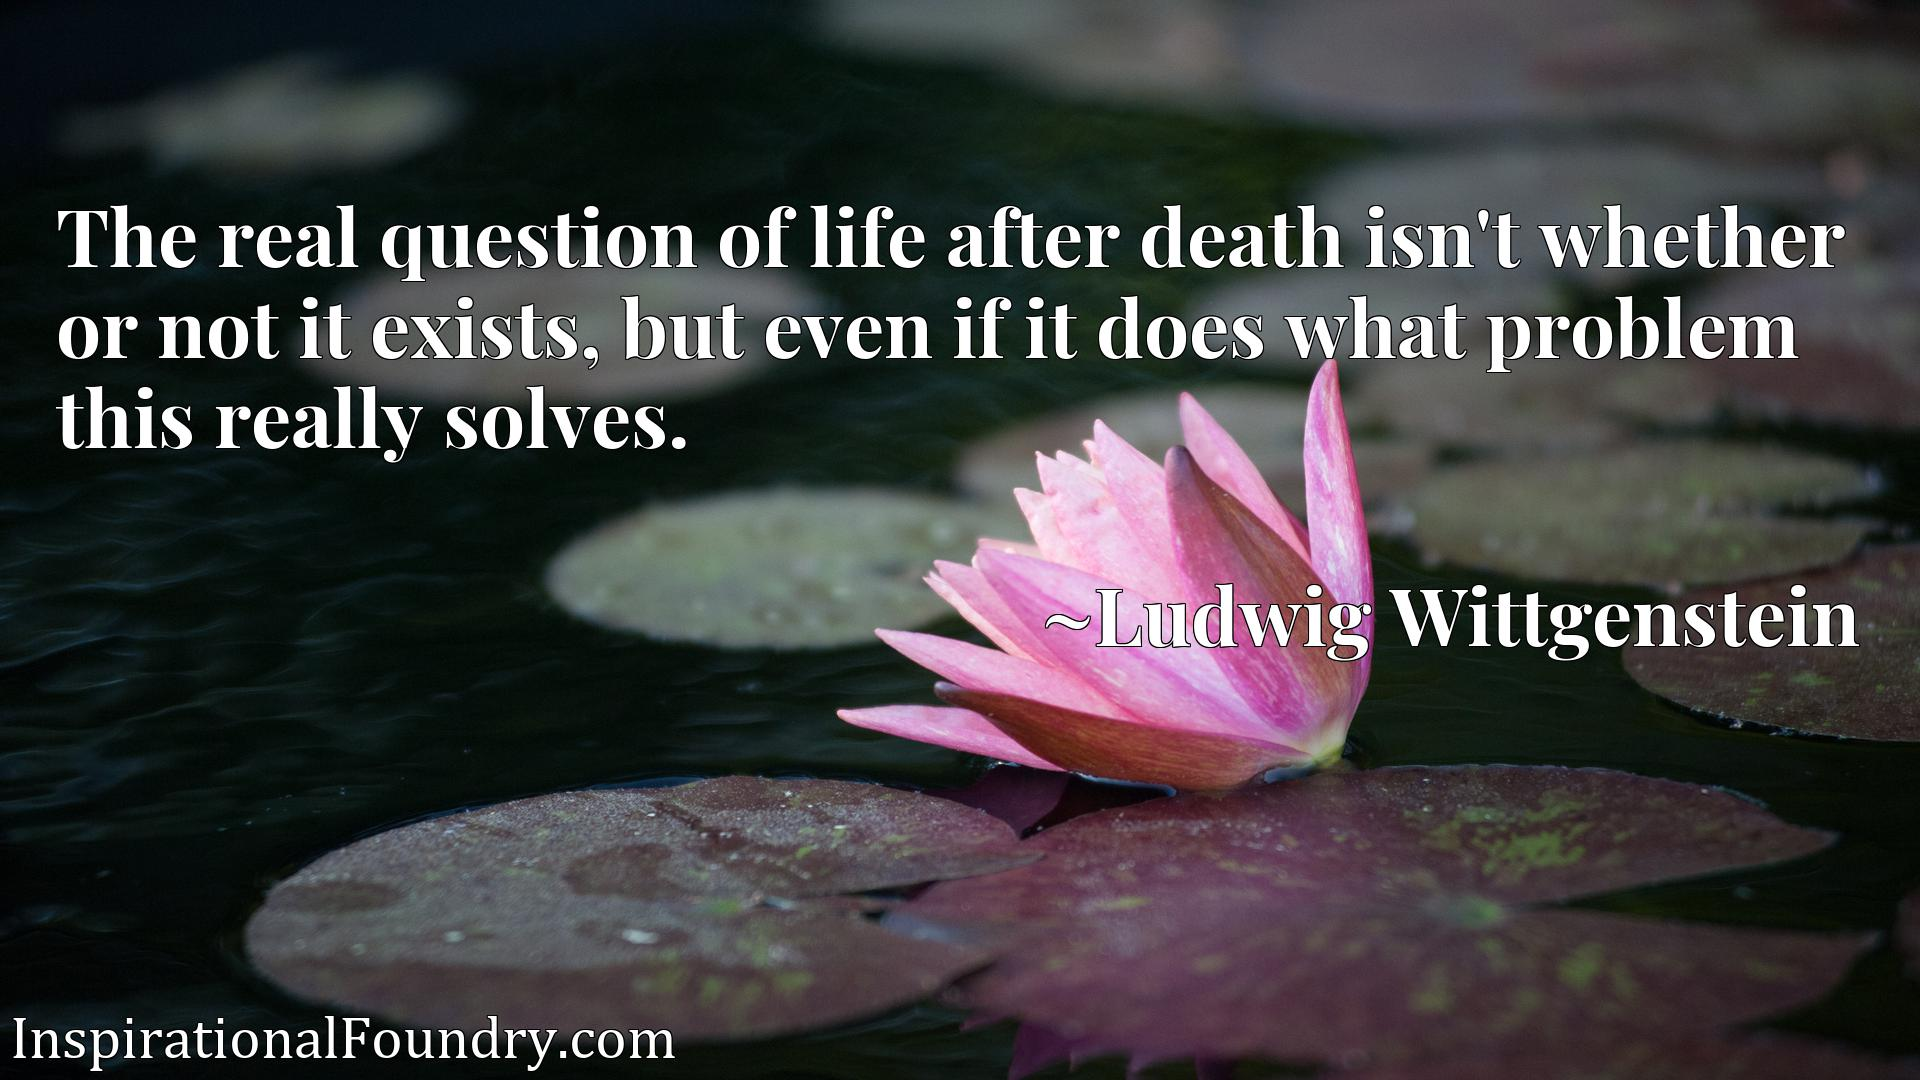 Quote Picture :The real question of life after death isn't whether or not it exists, but even if it does what problem this really solves.